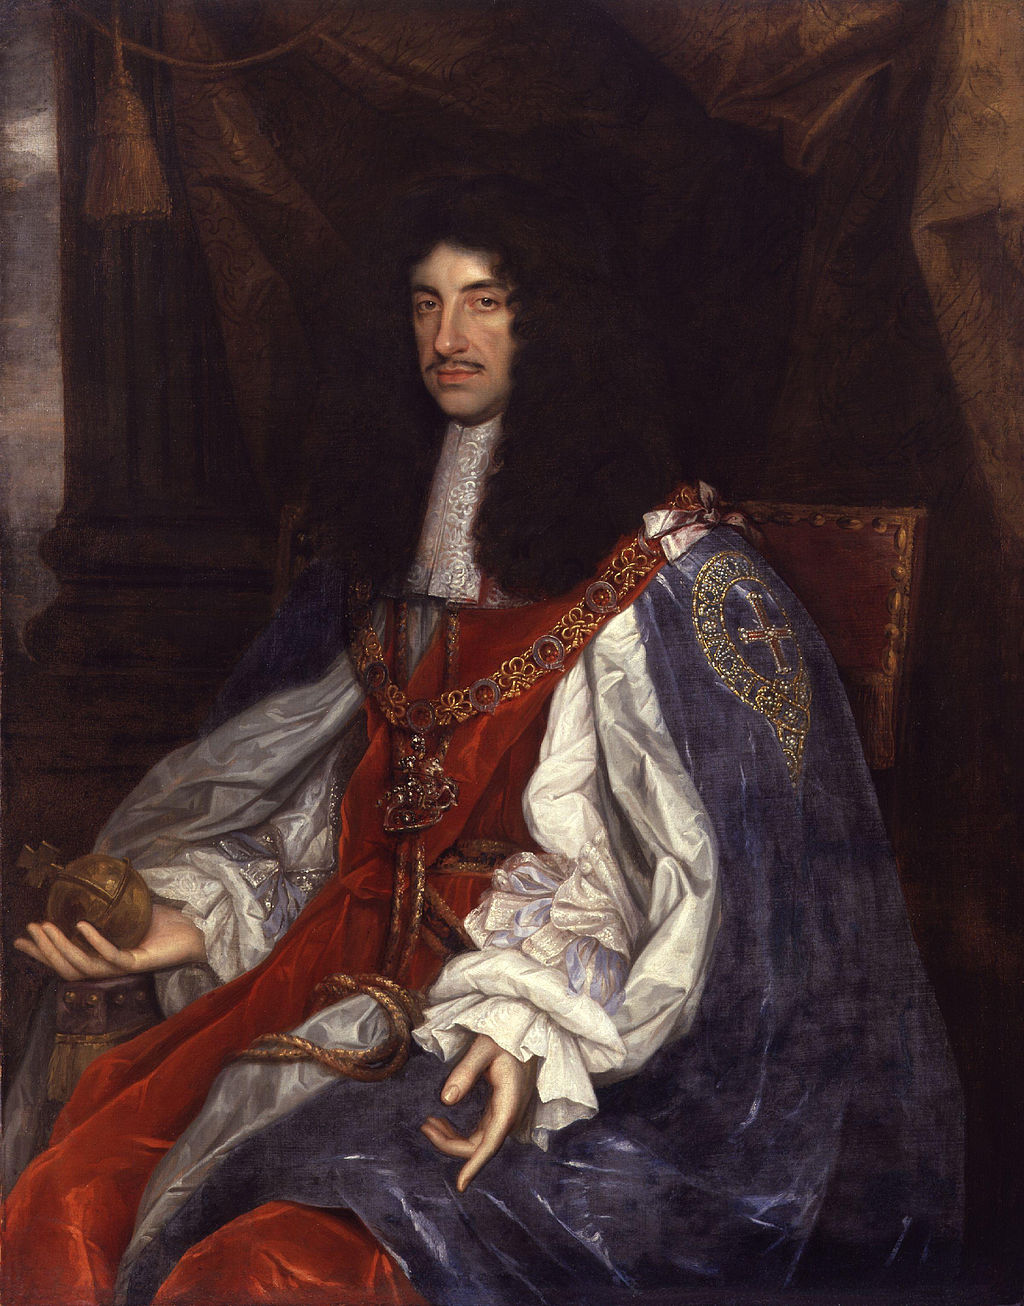 1024px-King_Charles_II_by_John_Michael_Wright_or_studio.jpg